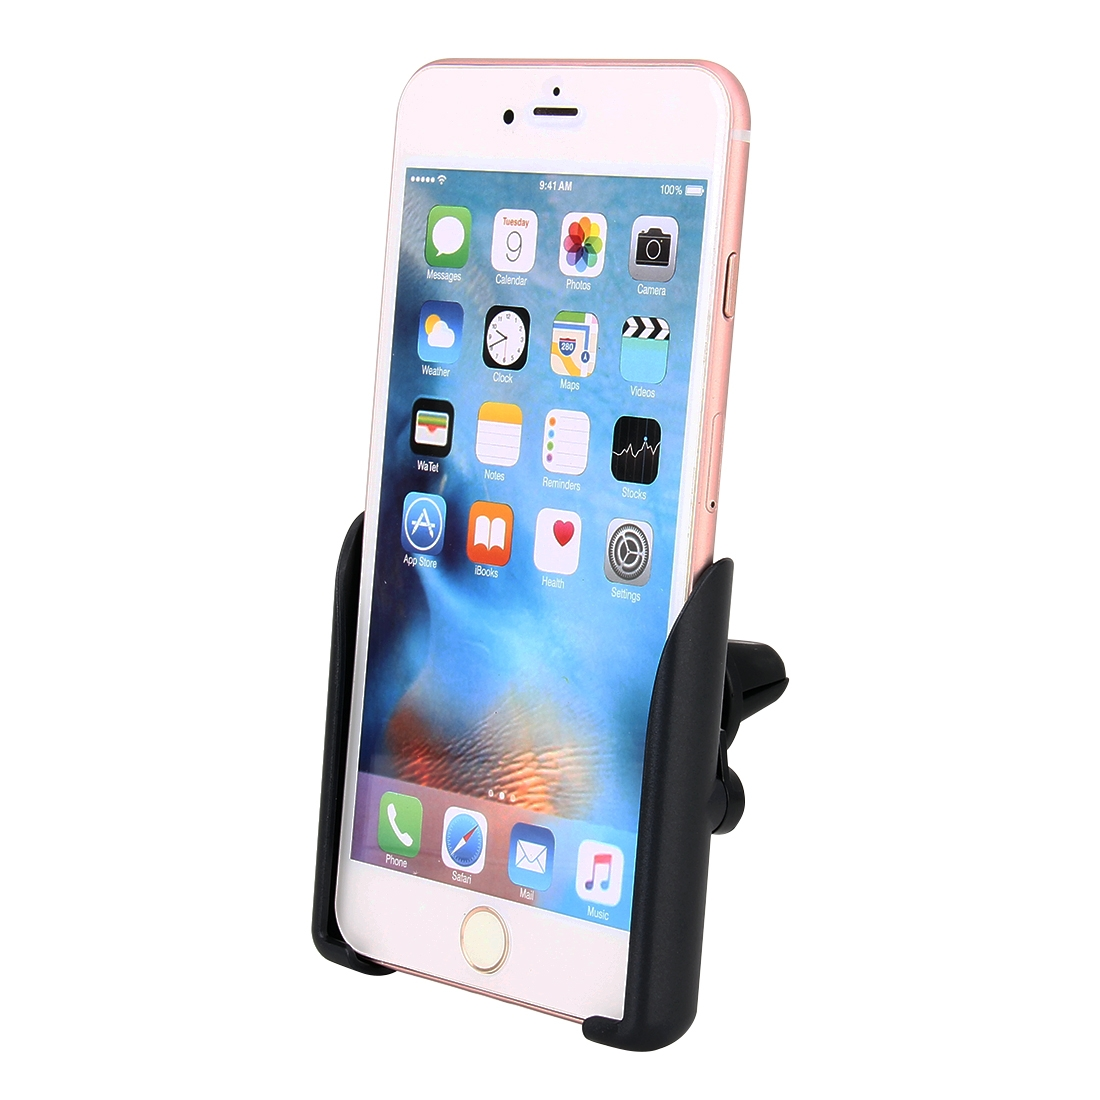 Universal Car Air Vent Mount Phone Holder Stand, Clip Width: 6-8.5cm, For iPhone, Galaxy, Sony, Lenovo, HTC, Huawei and other Smartphones (Black)